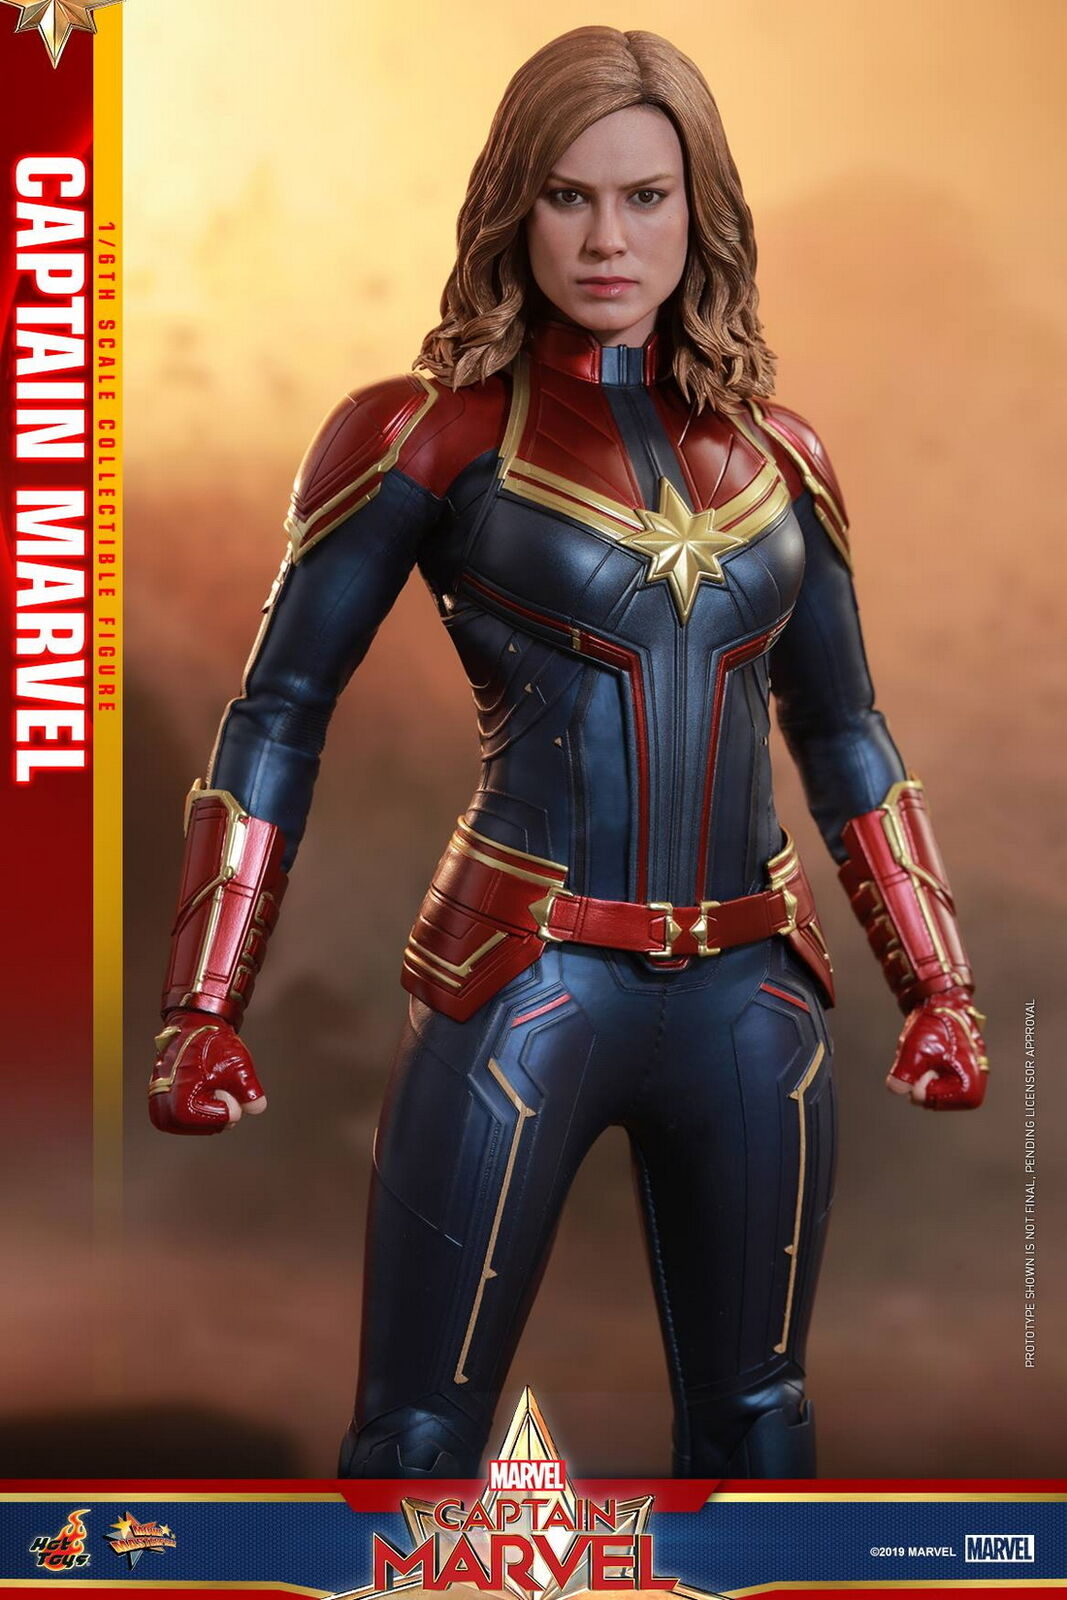 Hot Toys 1 6th scale Captain Marvel Collectible Figure MMS521